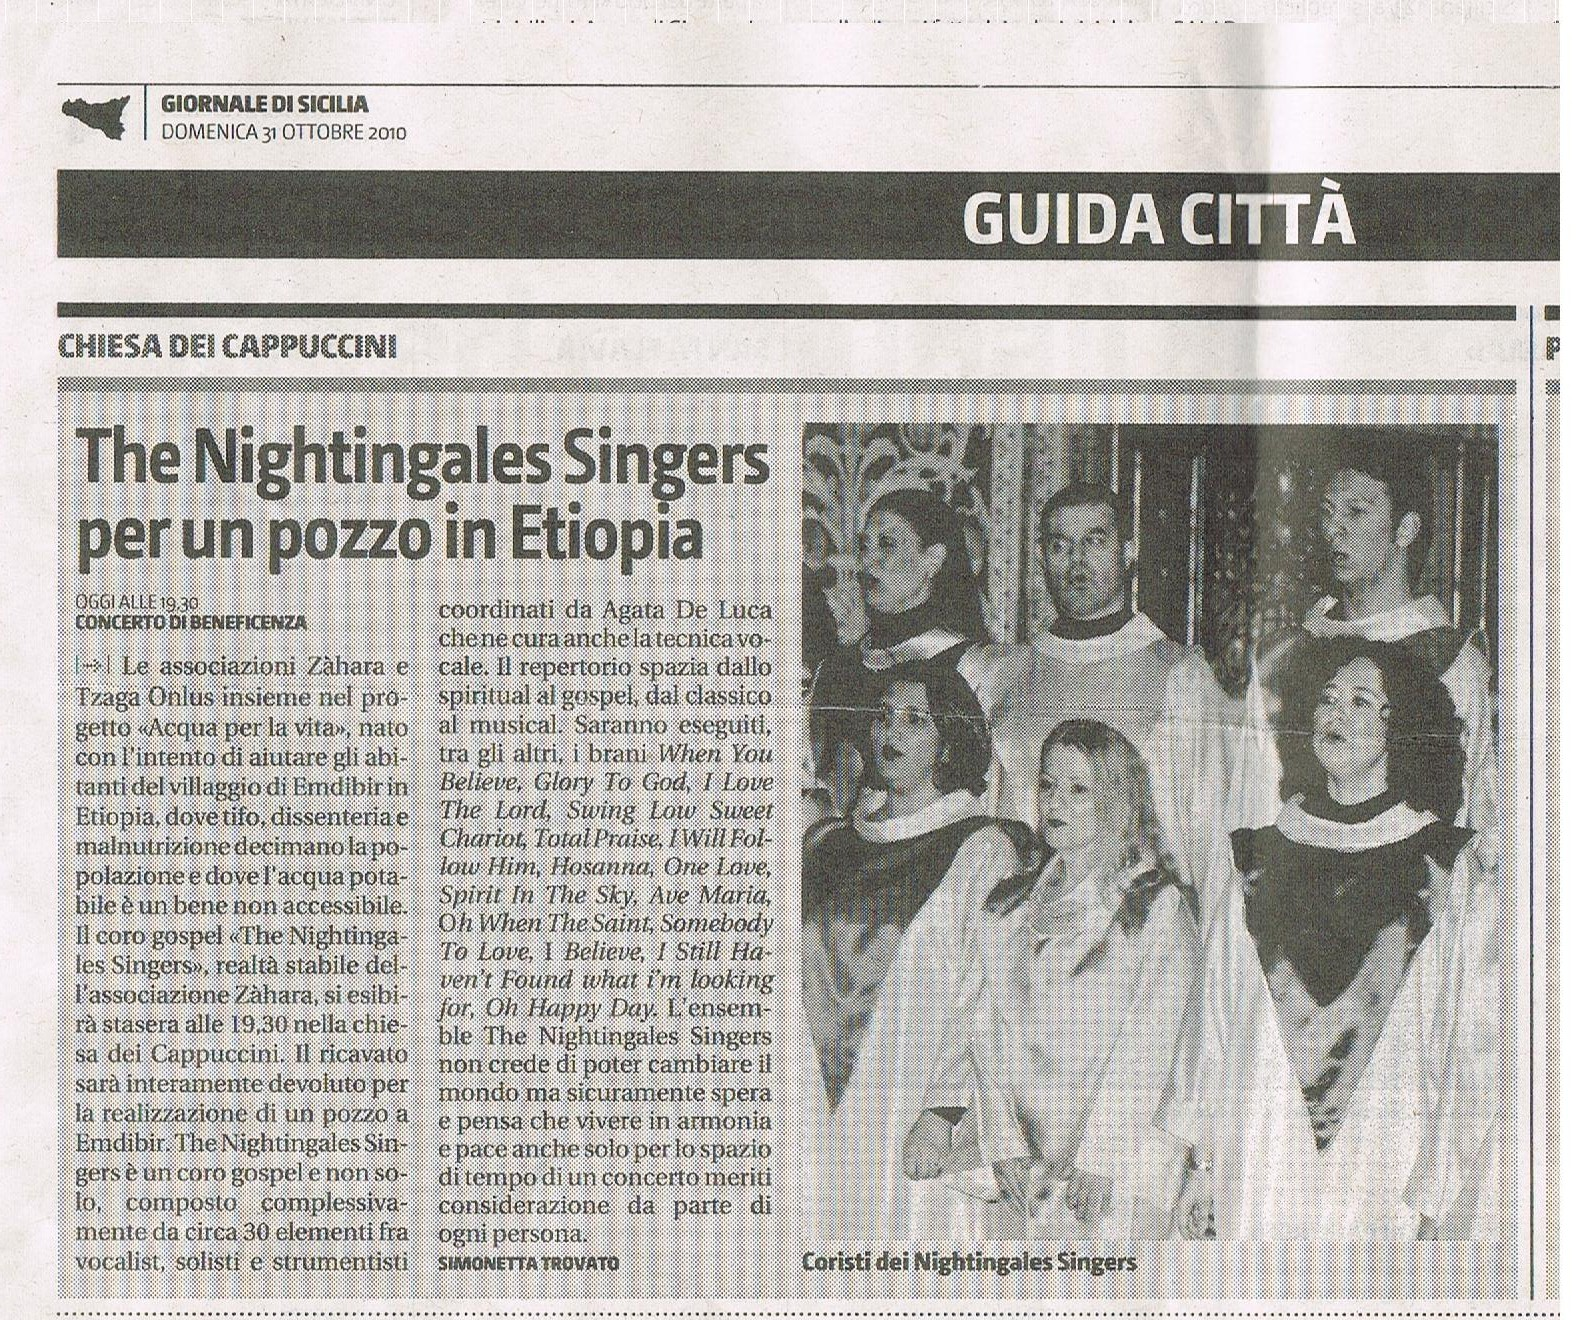 The Nightingales Singer per un pozzo in Etiopia